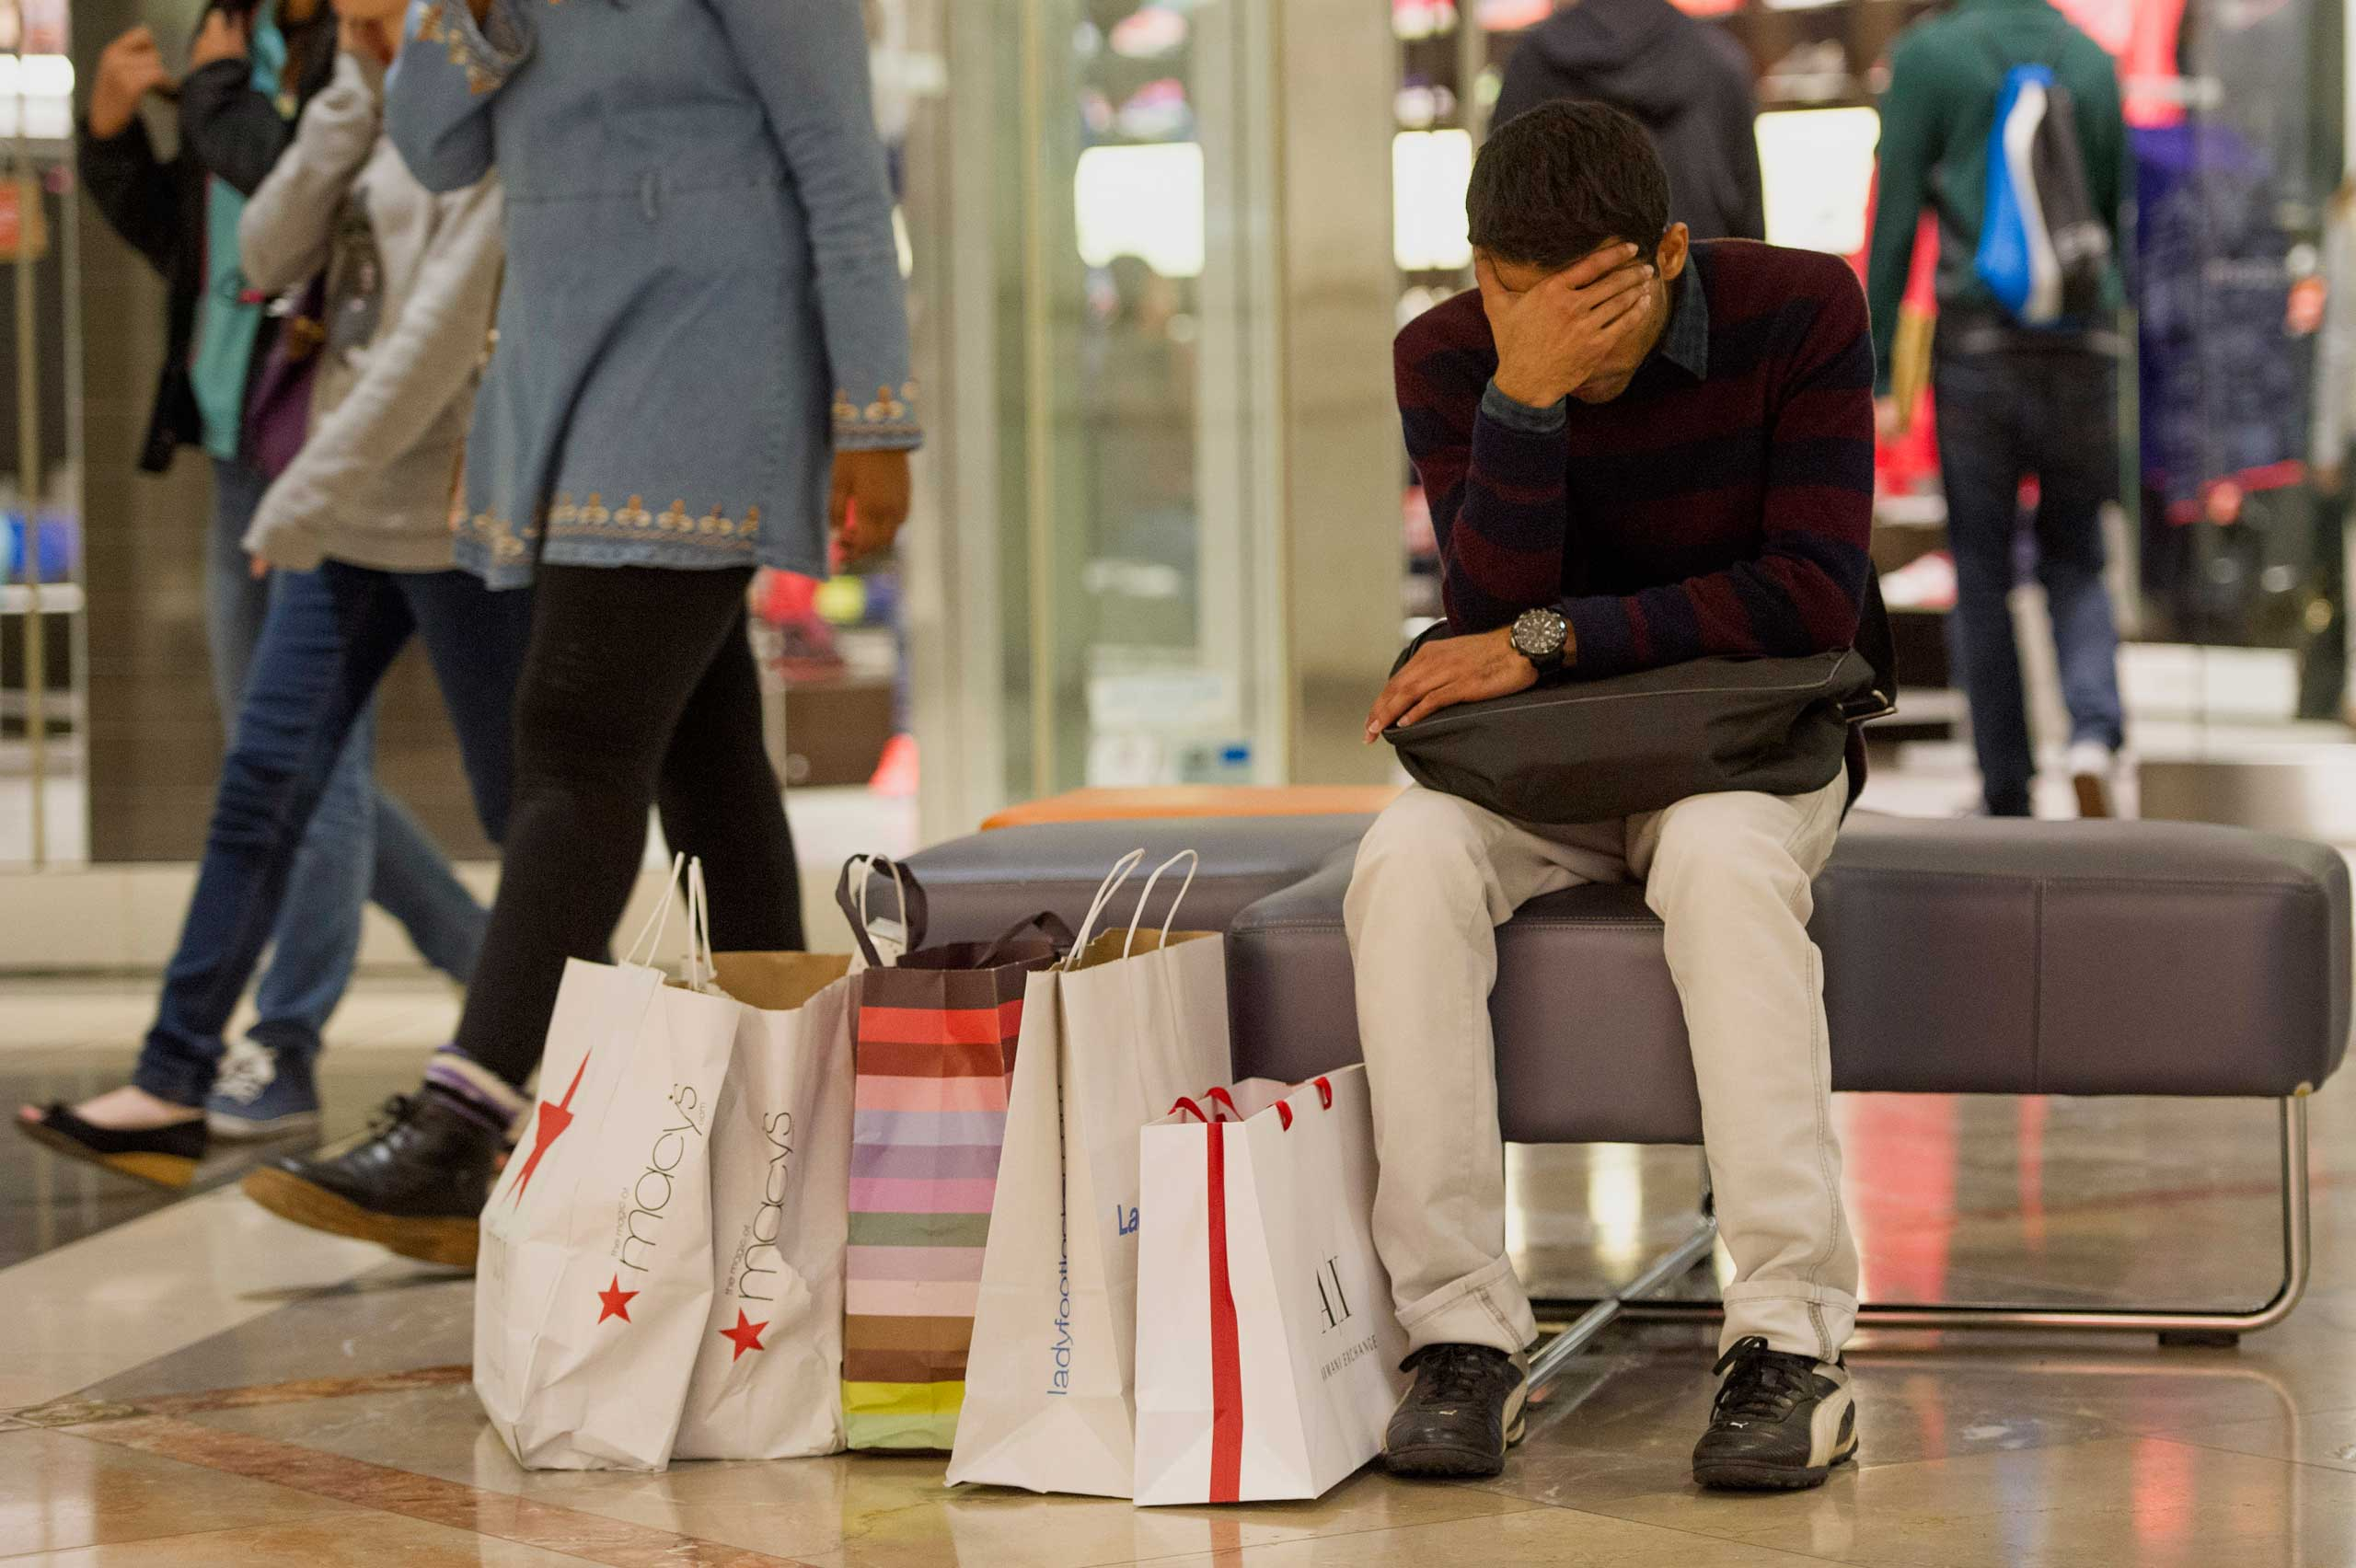 A man takes a break from shopping inside the Westfield San Francisco Centre on Black Friday in San Francisco, Nov. 28, 2014.